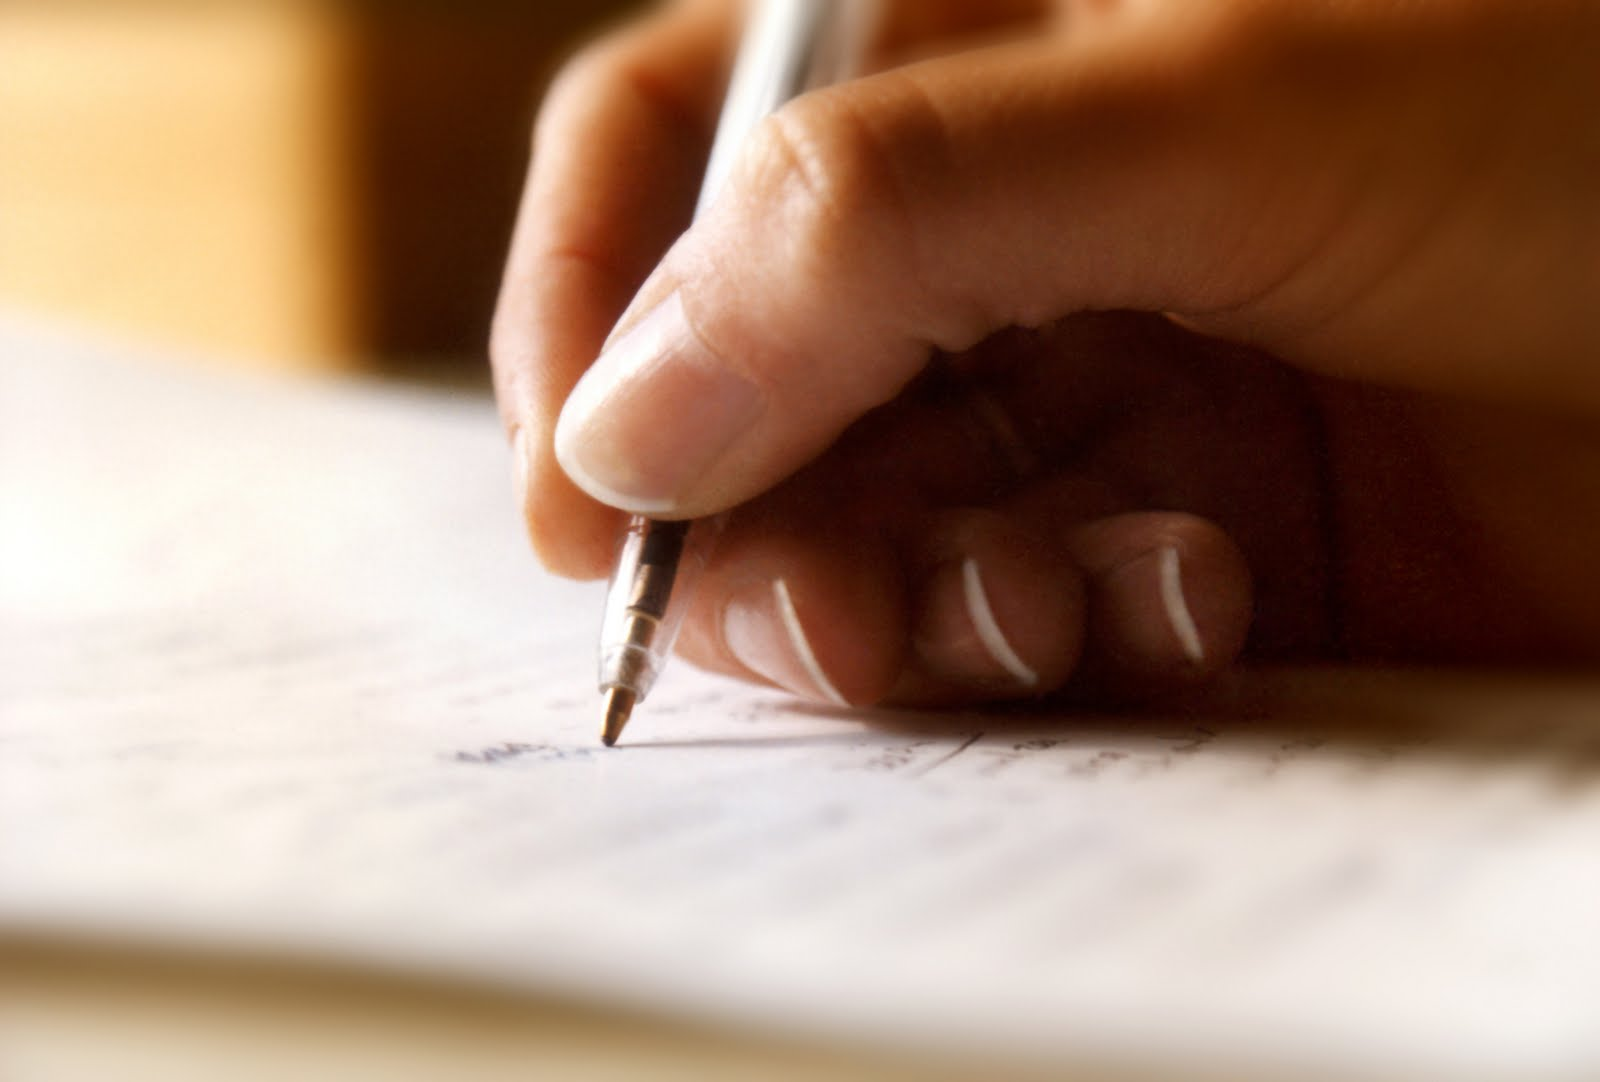 write an excellent article or essay on any topic